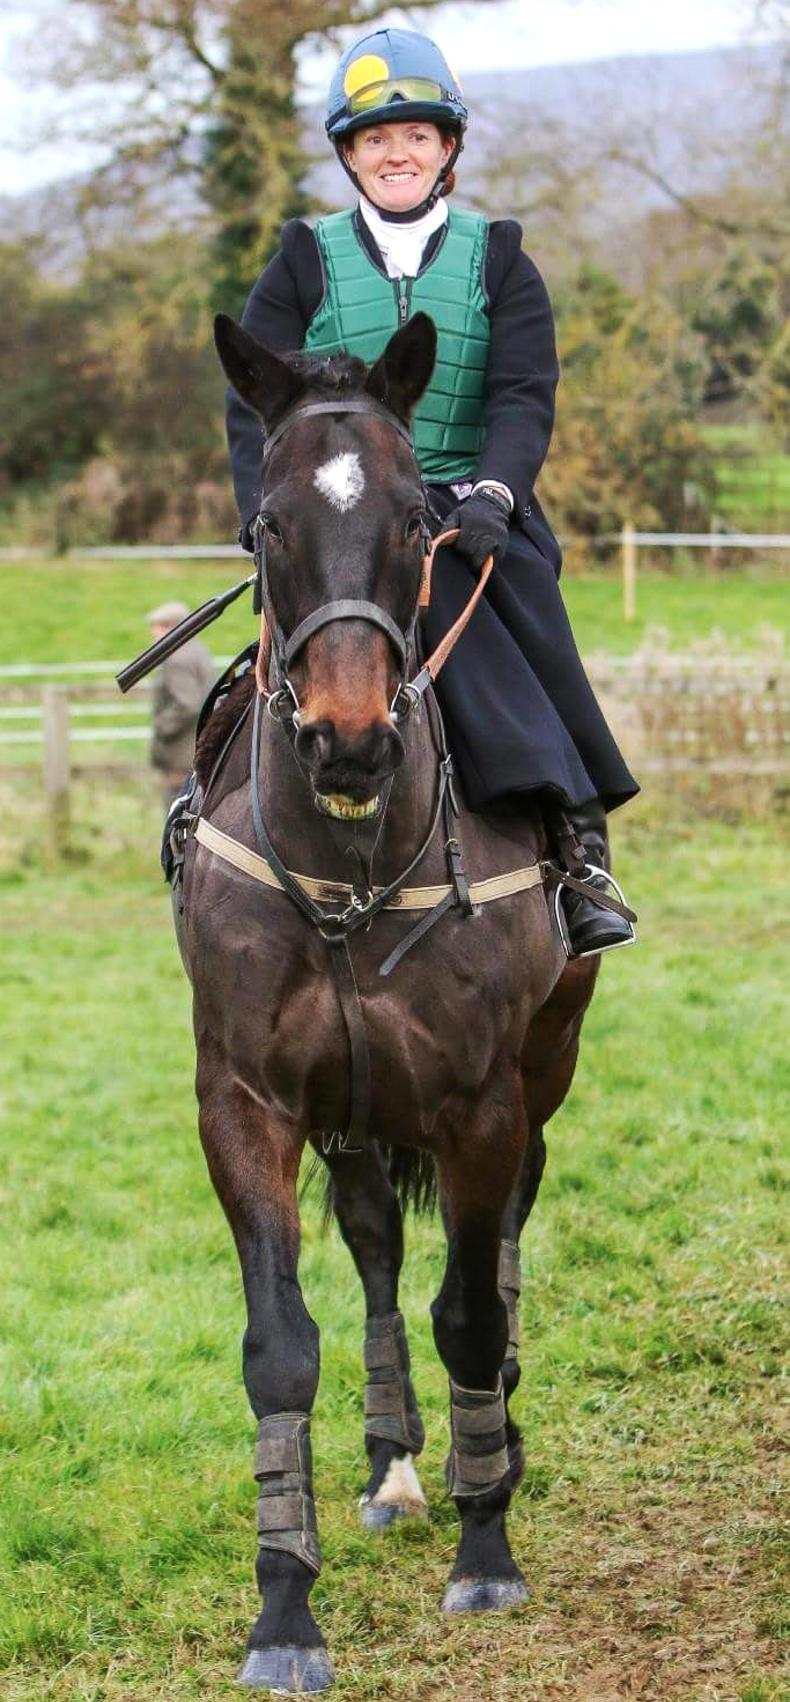 NEWS:   Owner appeal over missing horse